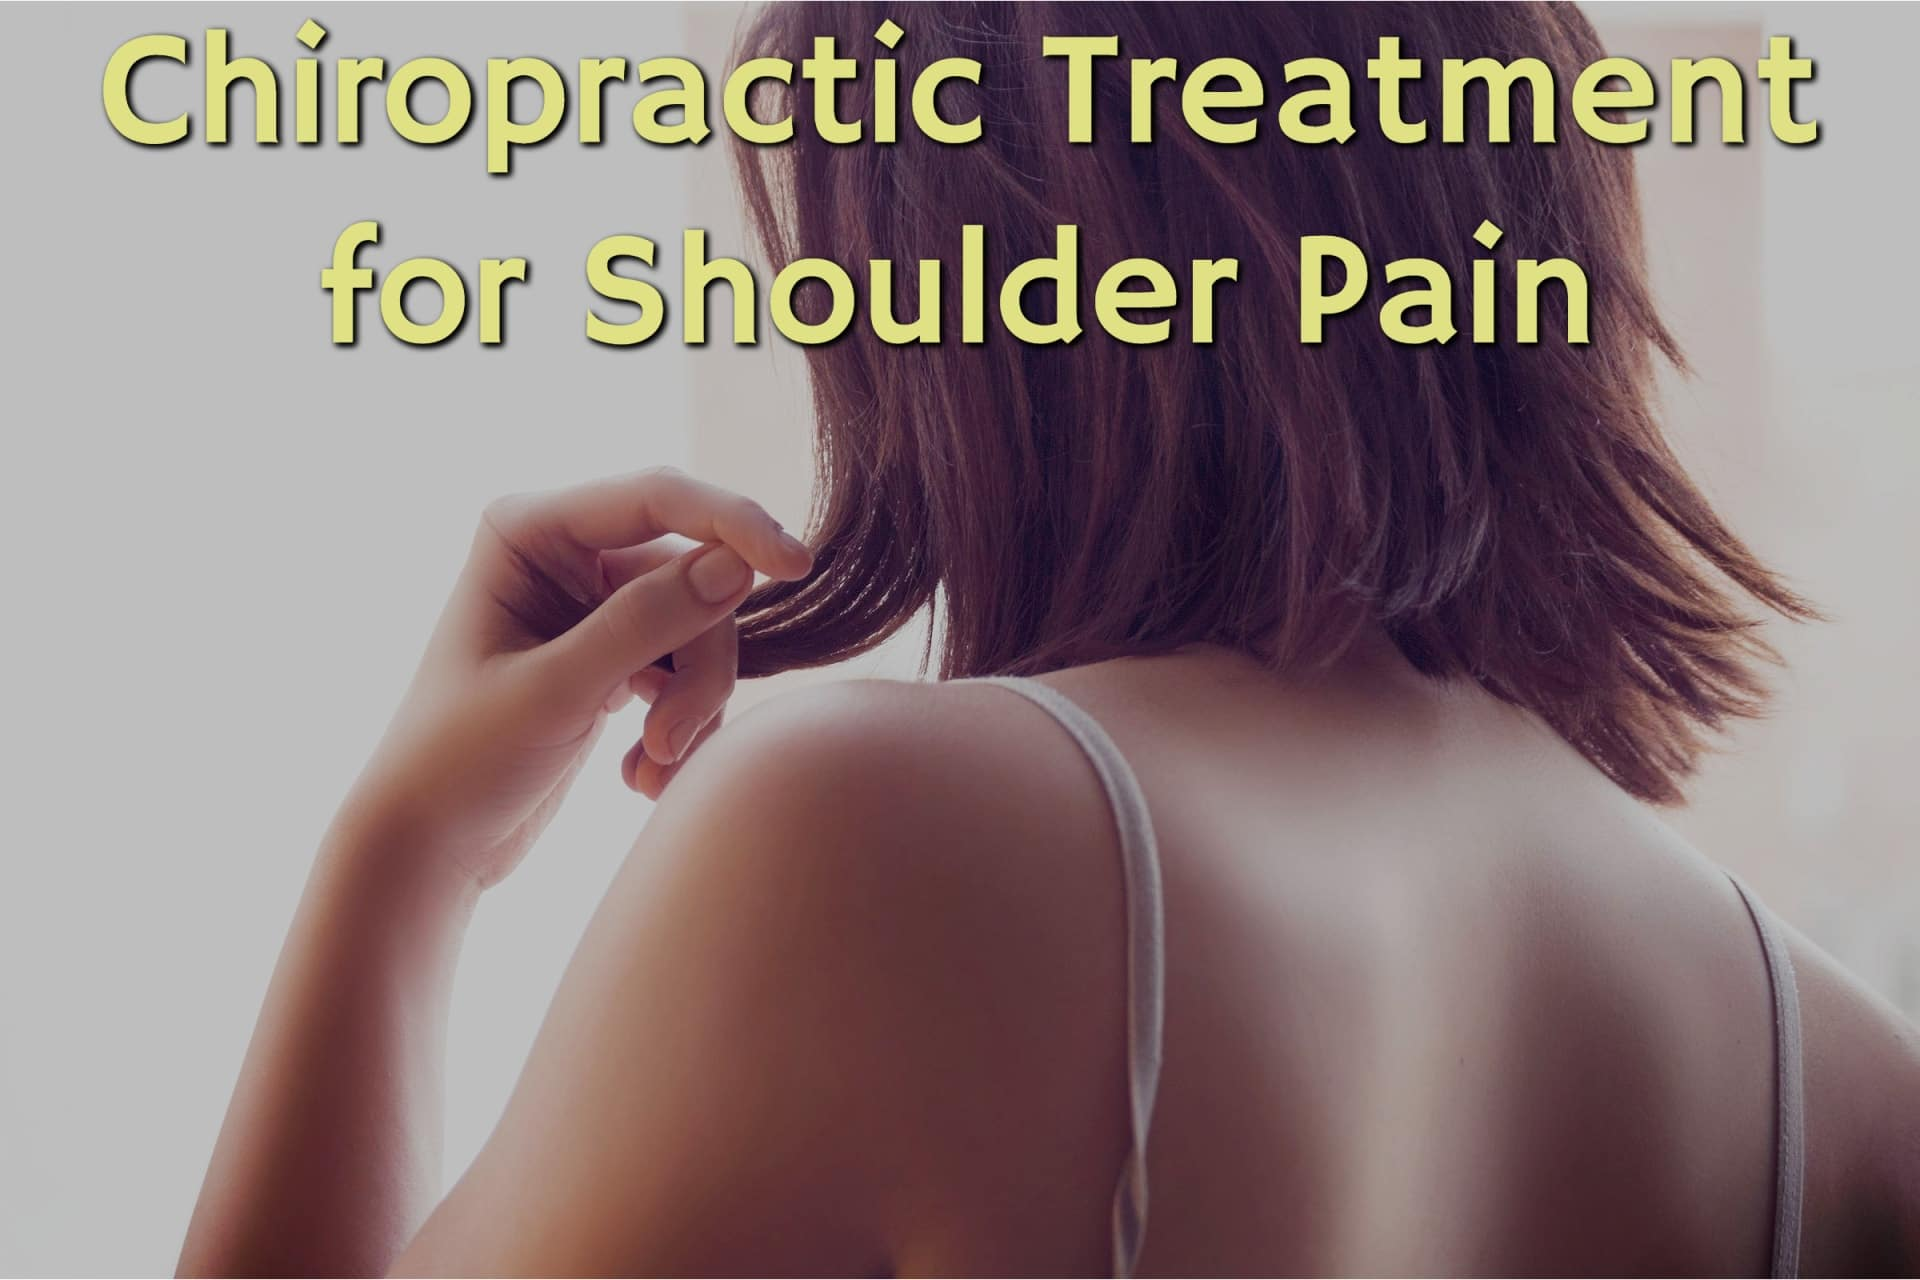 Woman Needing Chiropractic Treatment for Shoulder Pain